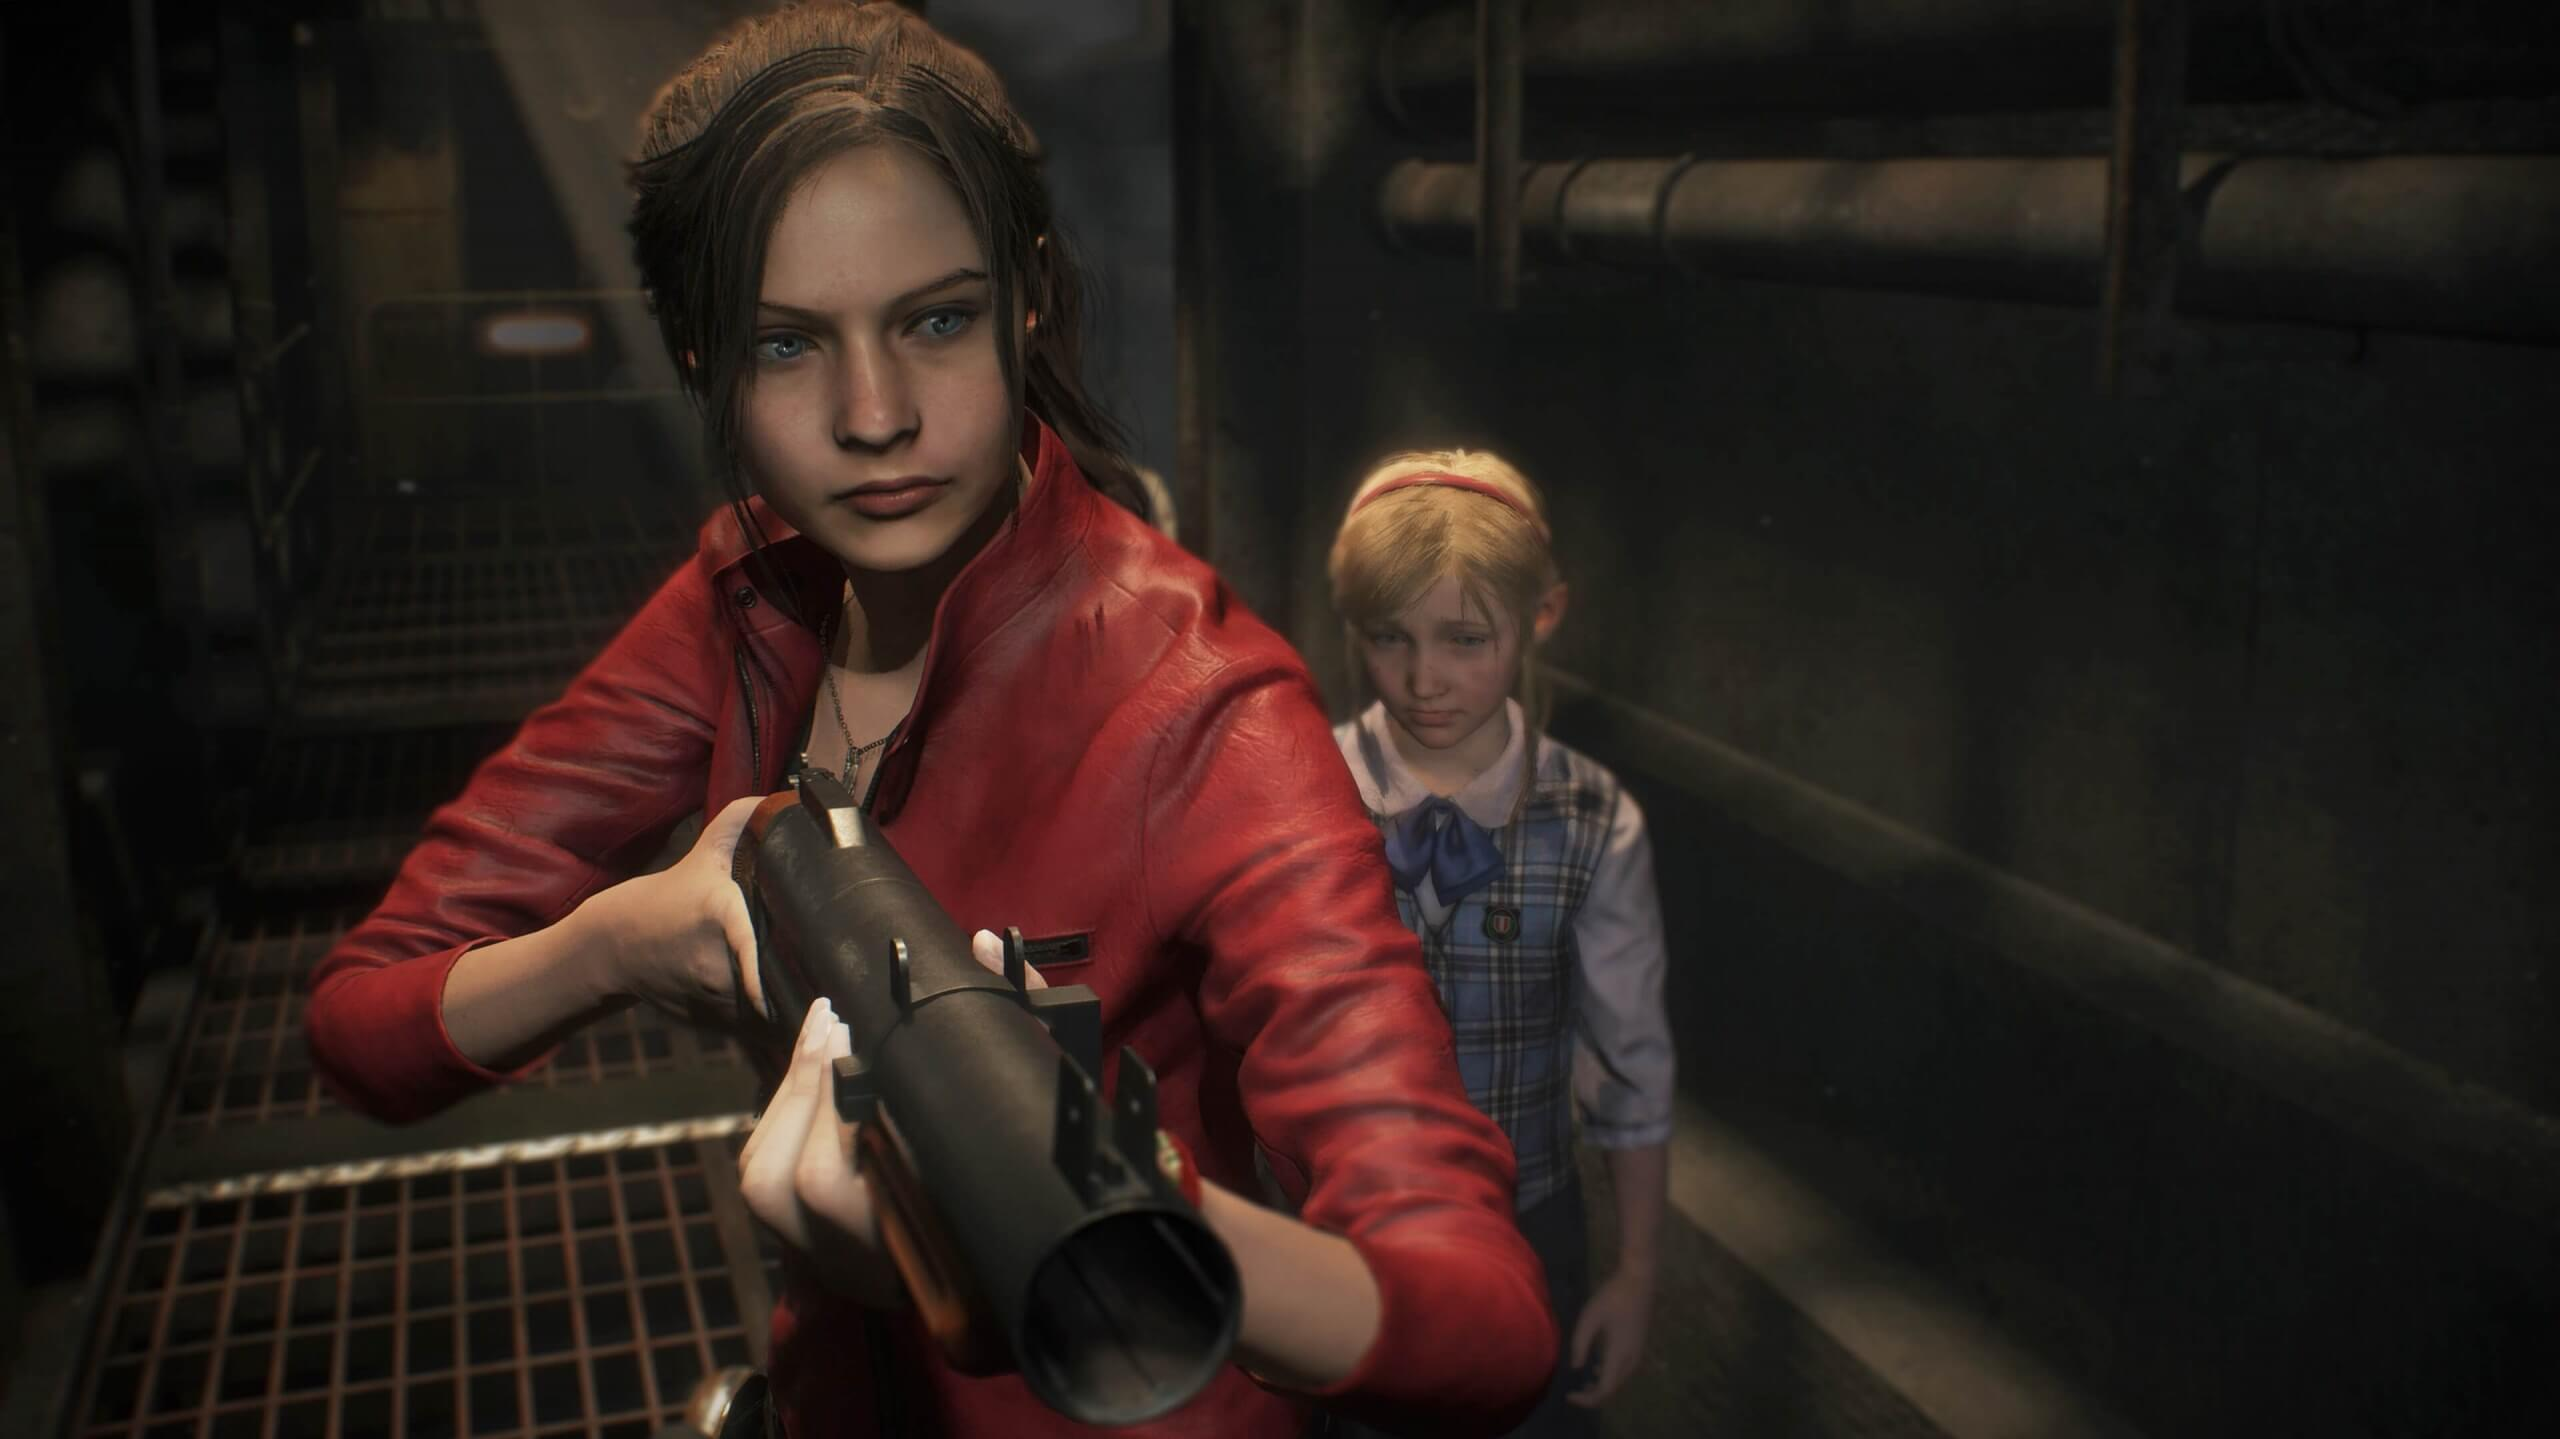 Highly anticipated: Nvidia recently showed off a gameplay trailer for Capcom's remake of Resident Evil 2 to demonstrate the capabilities of its newest RTX ...